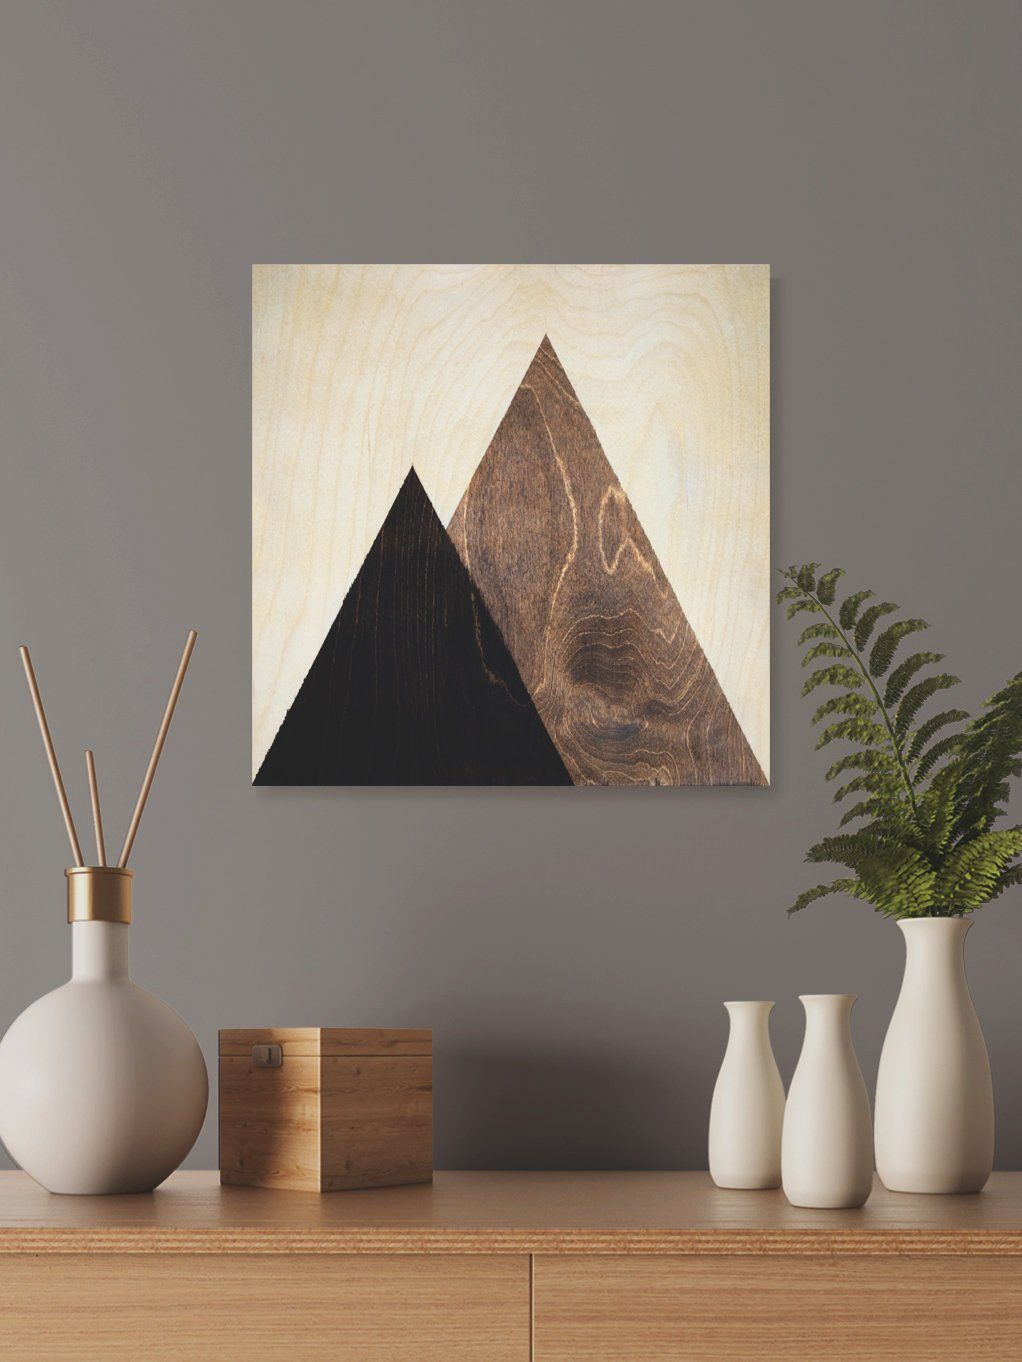 Contemporary Geometric Wall Decor Regarding Recent Contemporary Mountain Wall Decor, Dorm Wall Hanging Gift, Geometric (View 9 of 20)